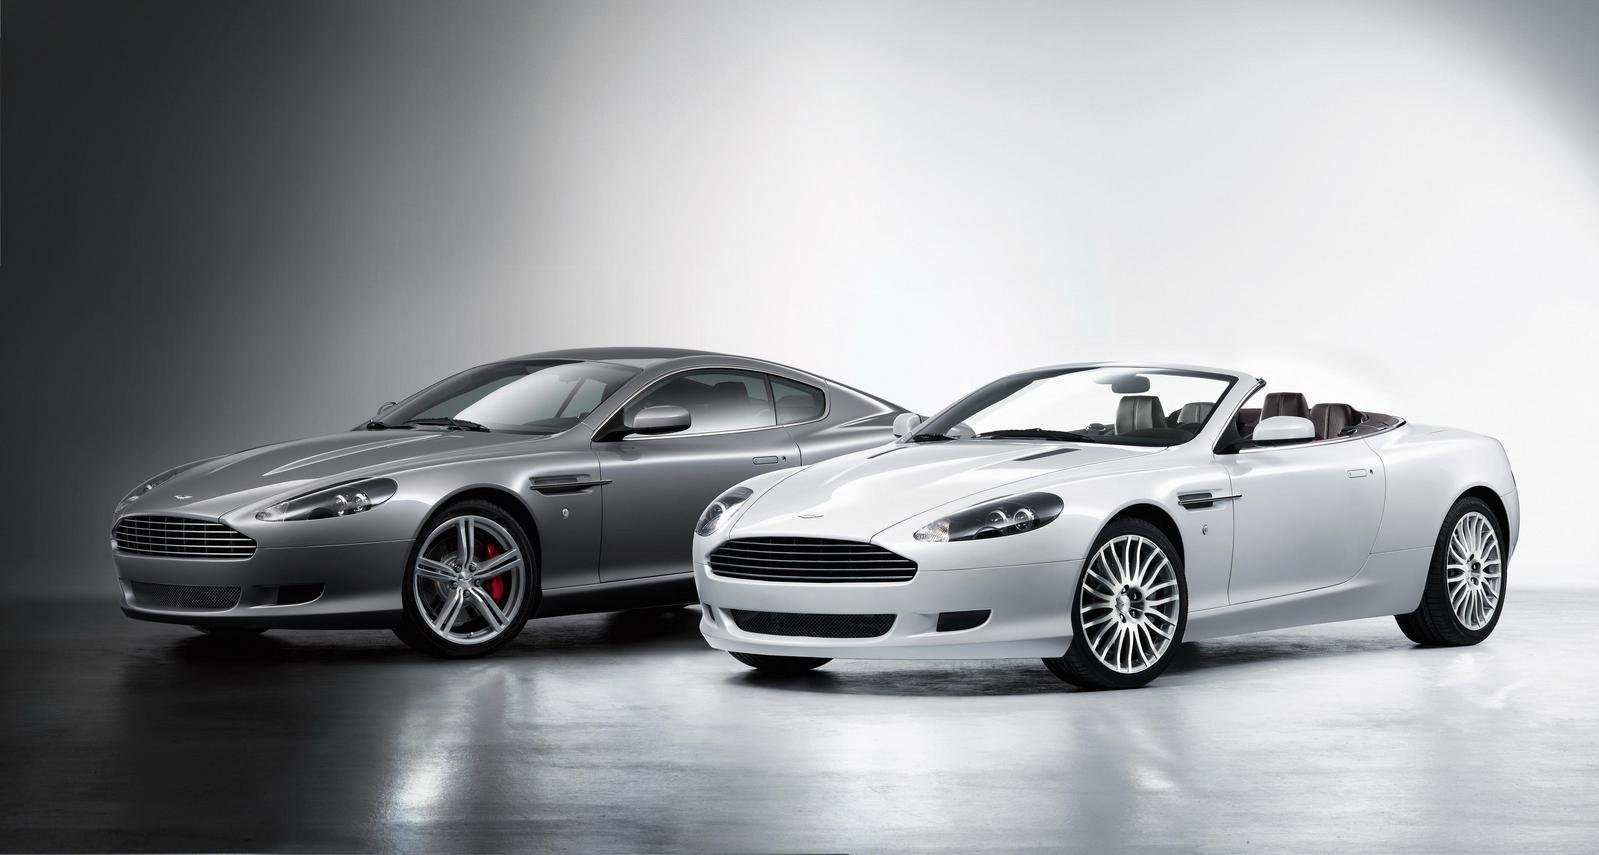 auto wallpapers 2009 aston martin db9 wallpapers. Black Bedroom Furniture Sets. Home Design Ideas